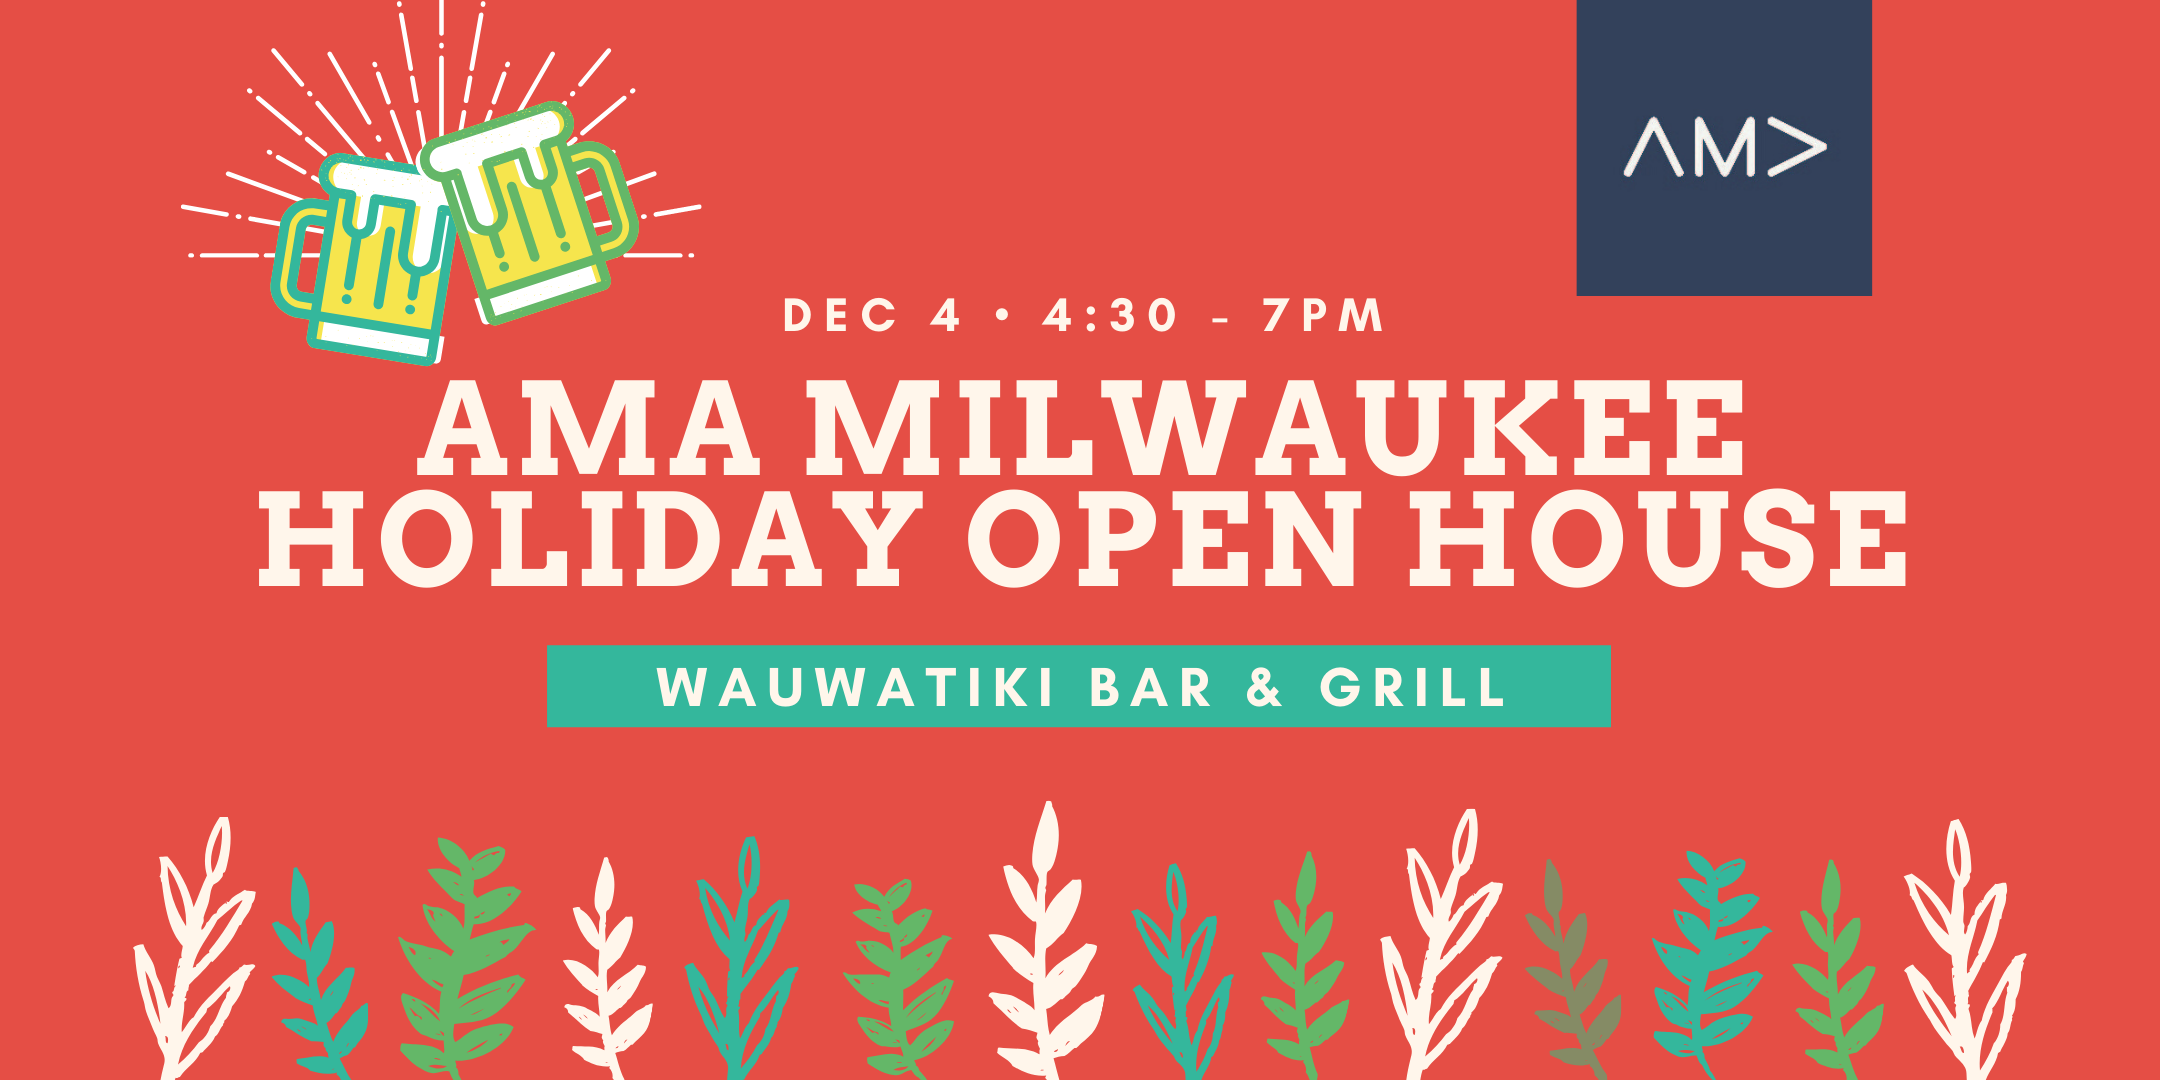 AMA 2019 Holiday Open House